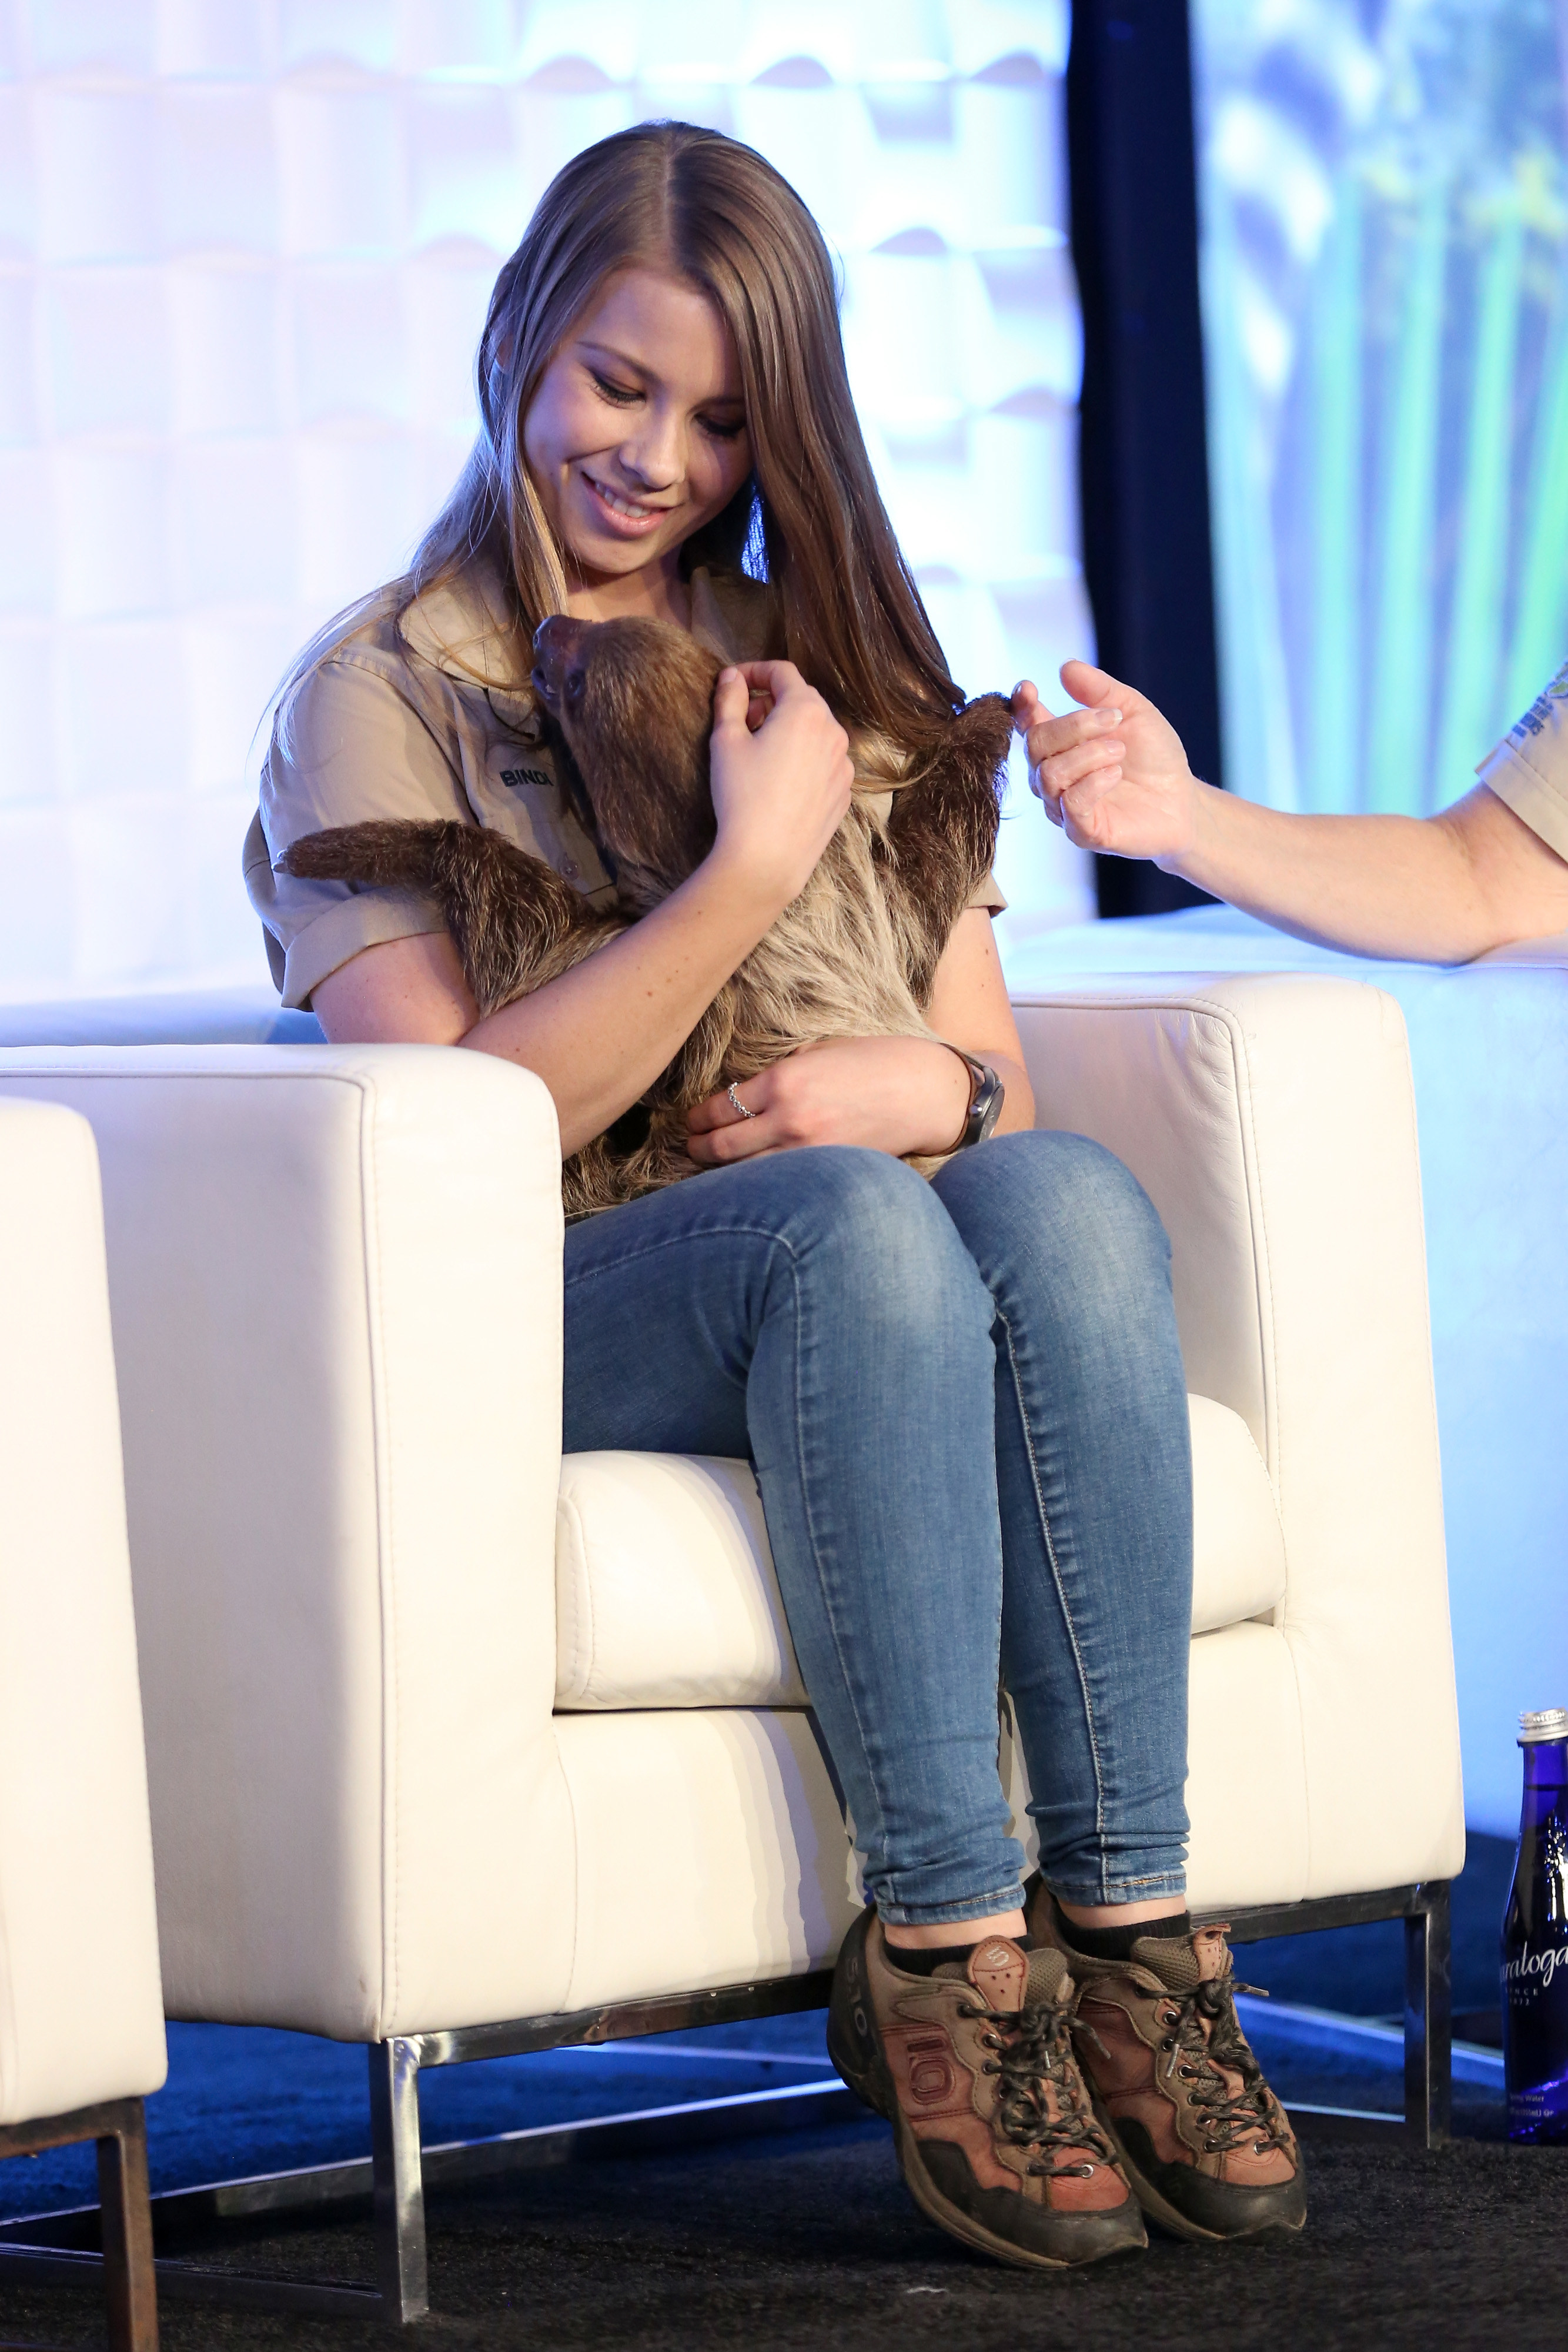 """Bindi Irwin holds a sloth onstage as Animal Planet celebrates """"Crikey! It's the Irwins"""" on October 19, 2018 in New York City"""